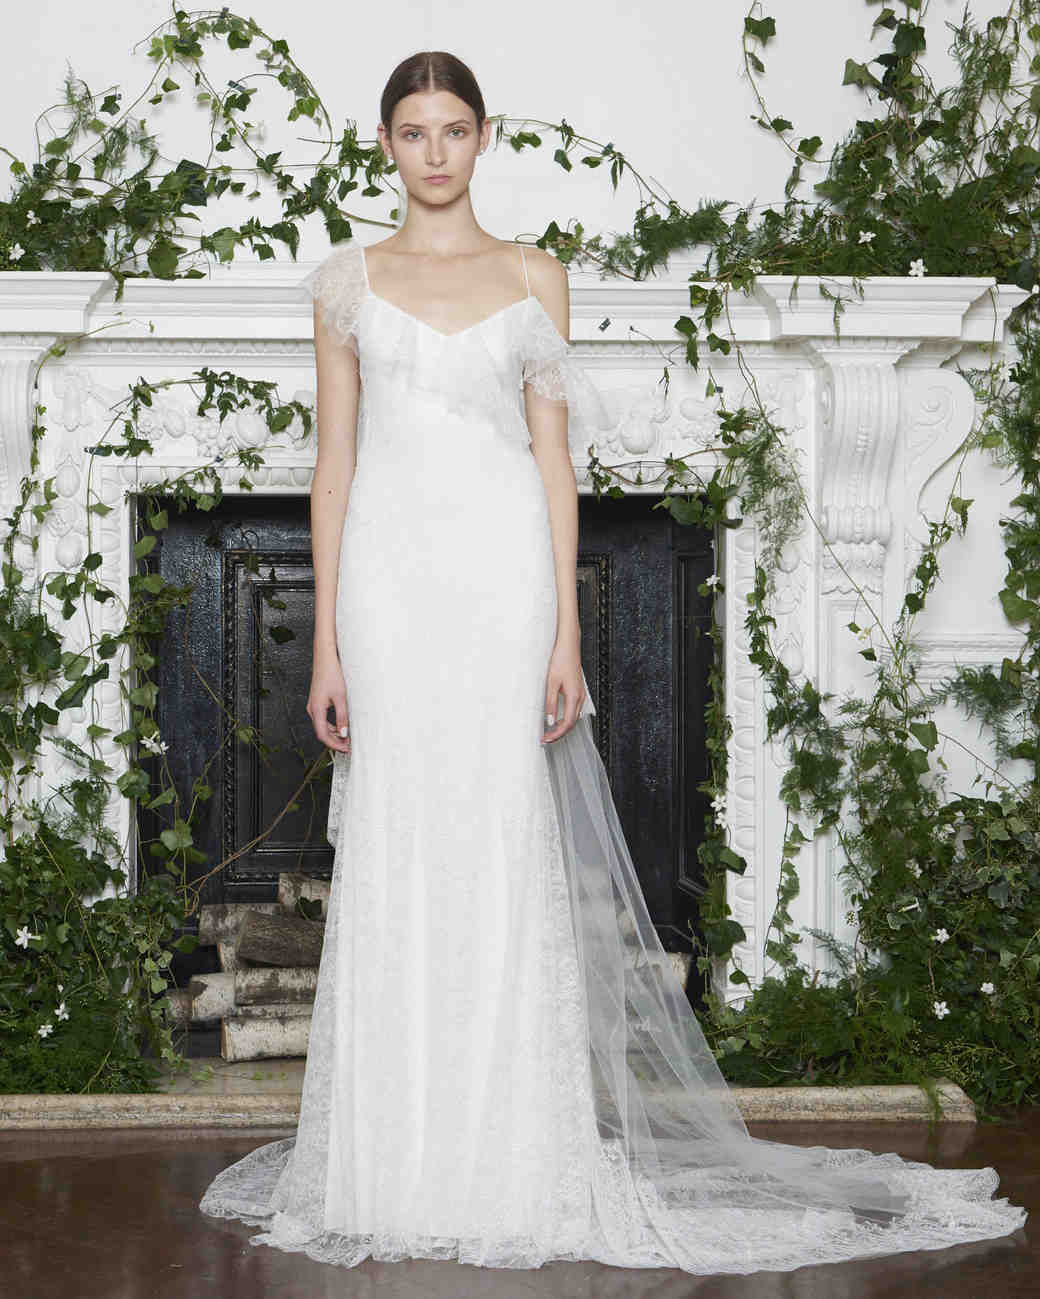 Monique Lhuillier Fall 2018 Sheath Wedding Dress with Asymmetrical Sleeves